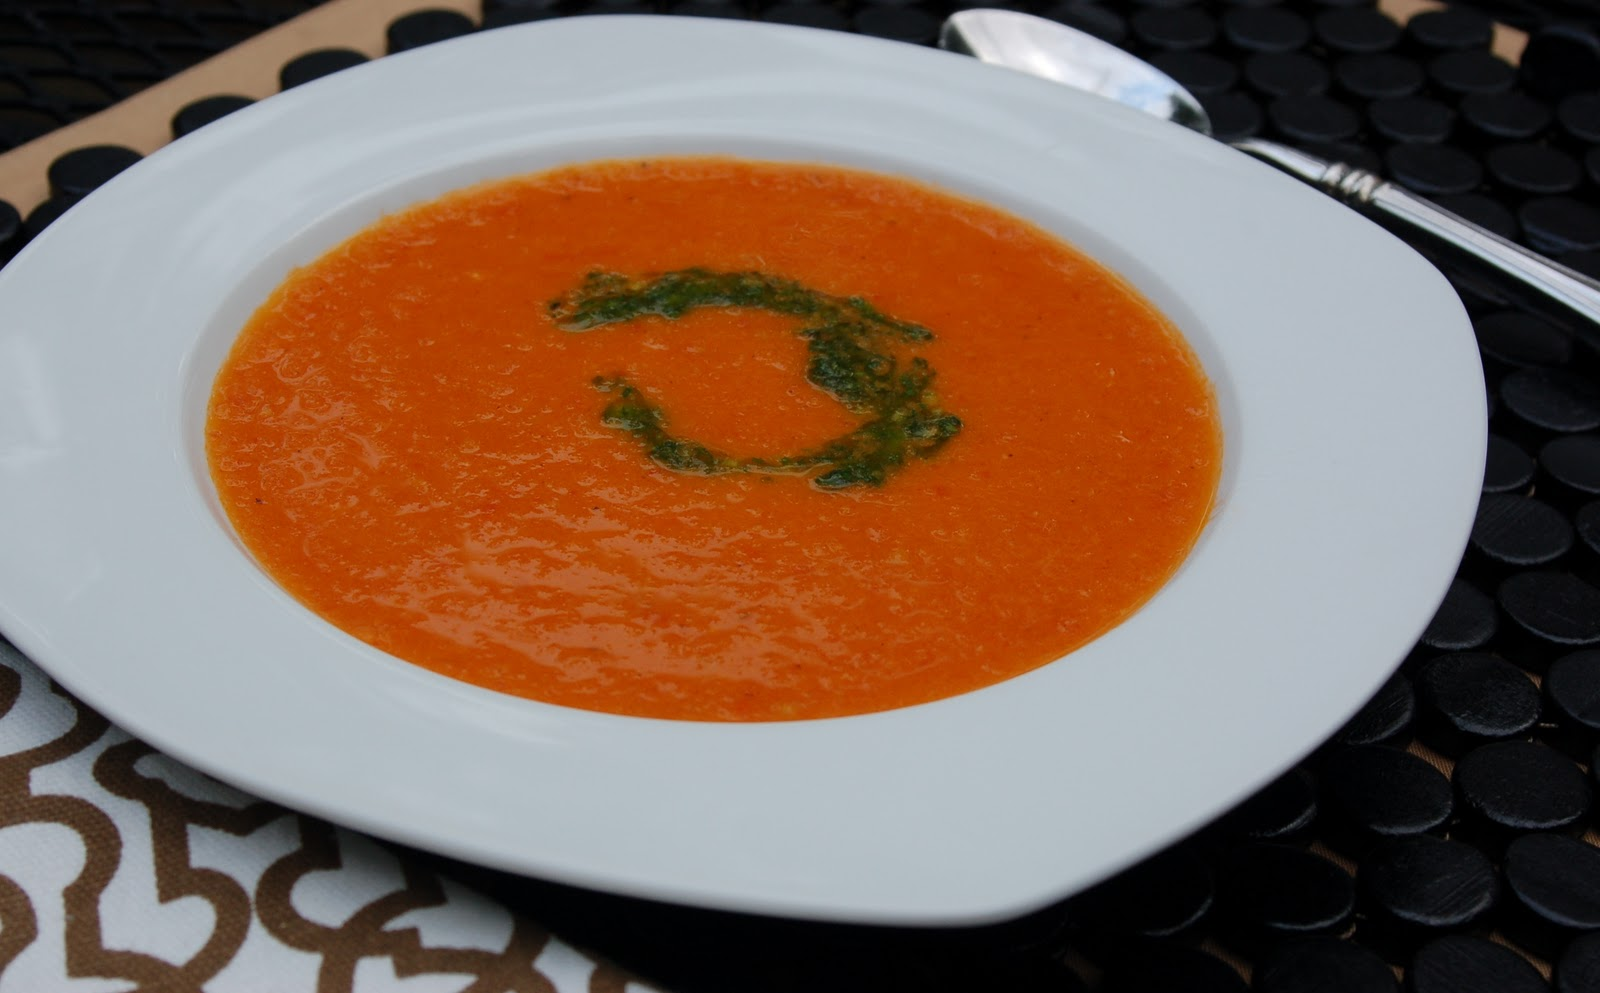 Another Marvelous Meal: Roasted Tomato Soup with Basil Coulis